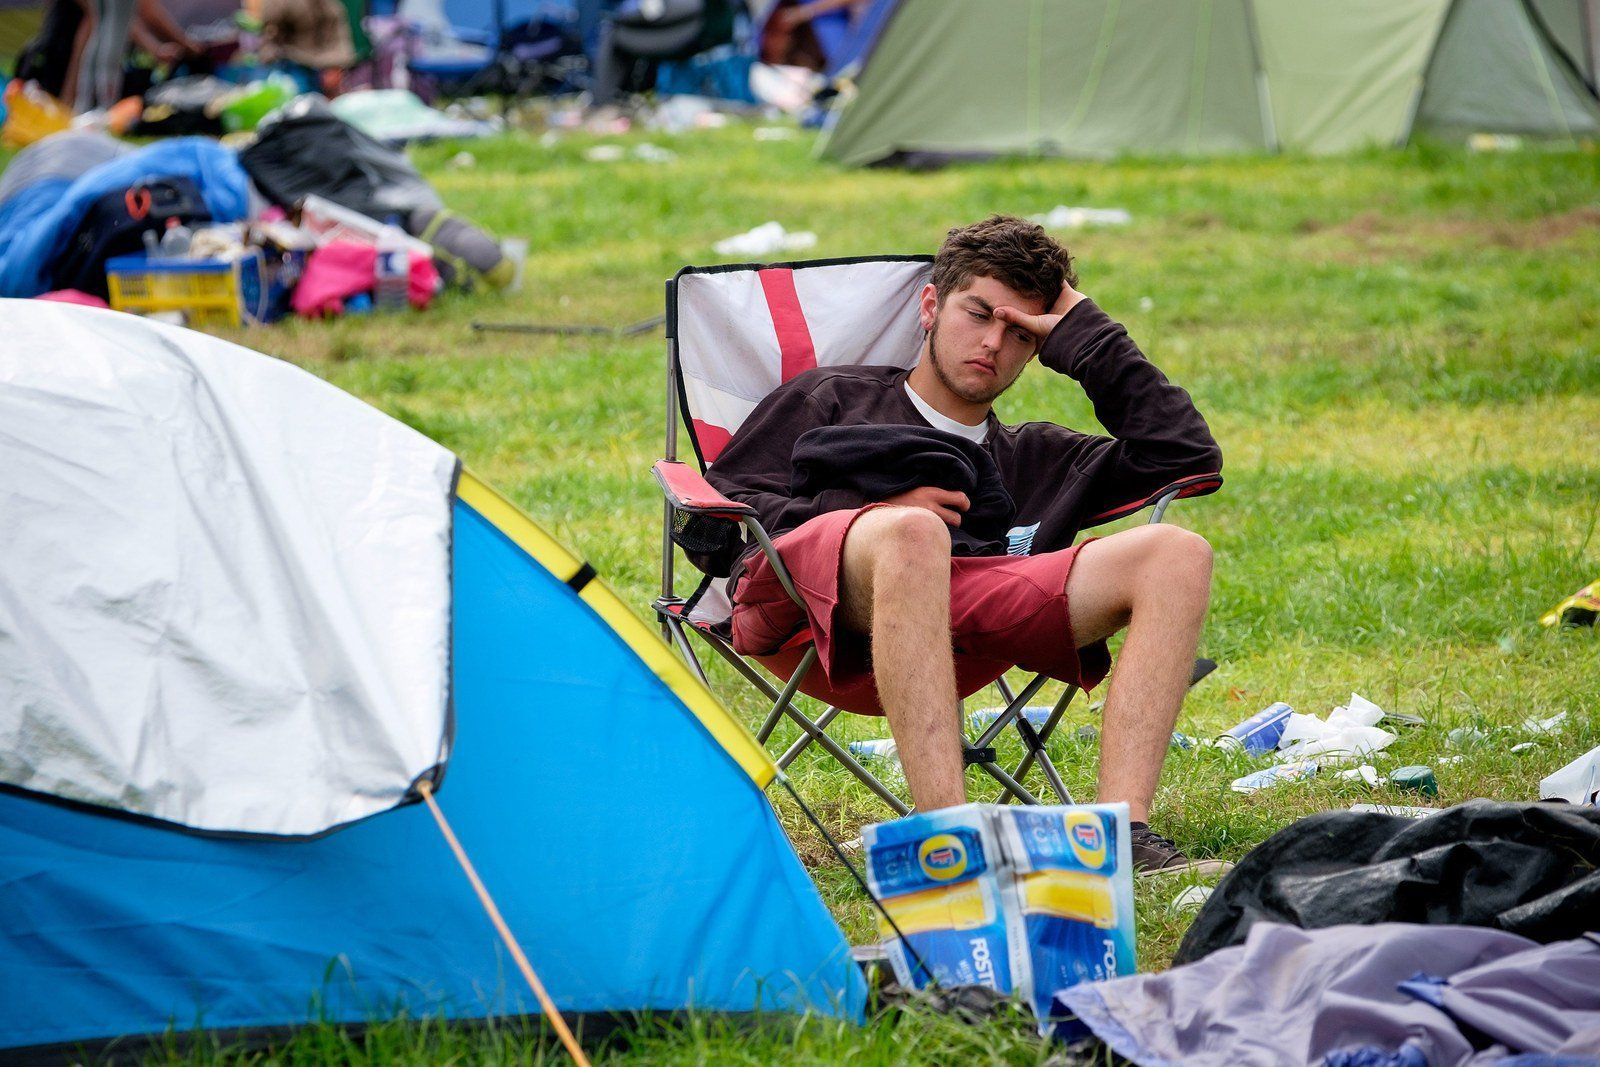 15 Images Of The Glastonbury 2015 Hangover That Will Make You Feel Better For Missing It